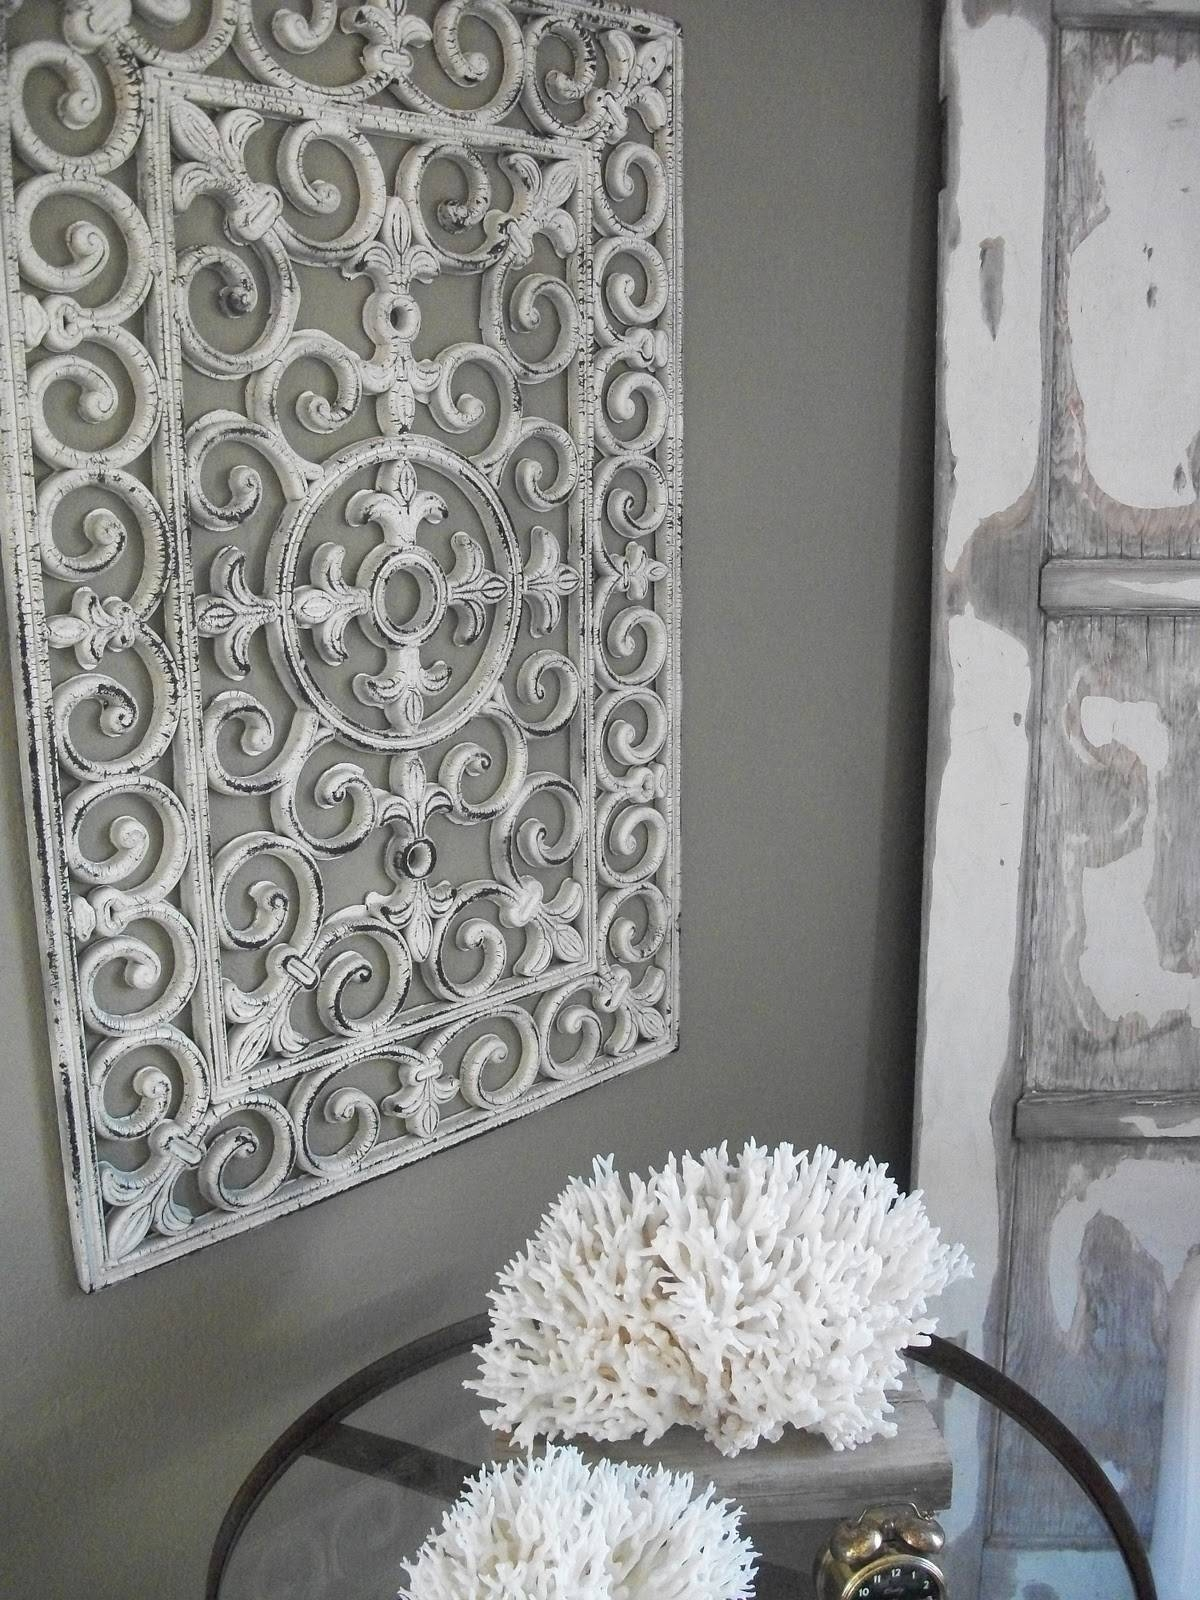 Turn A Rubber Door Mat Into Wall Art » Dollar Store Crafts For Most Recent Inexpensive Metal Wall Art (View 15 of 20)